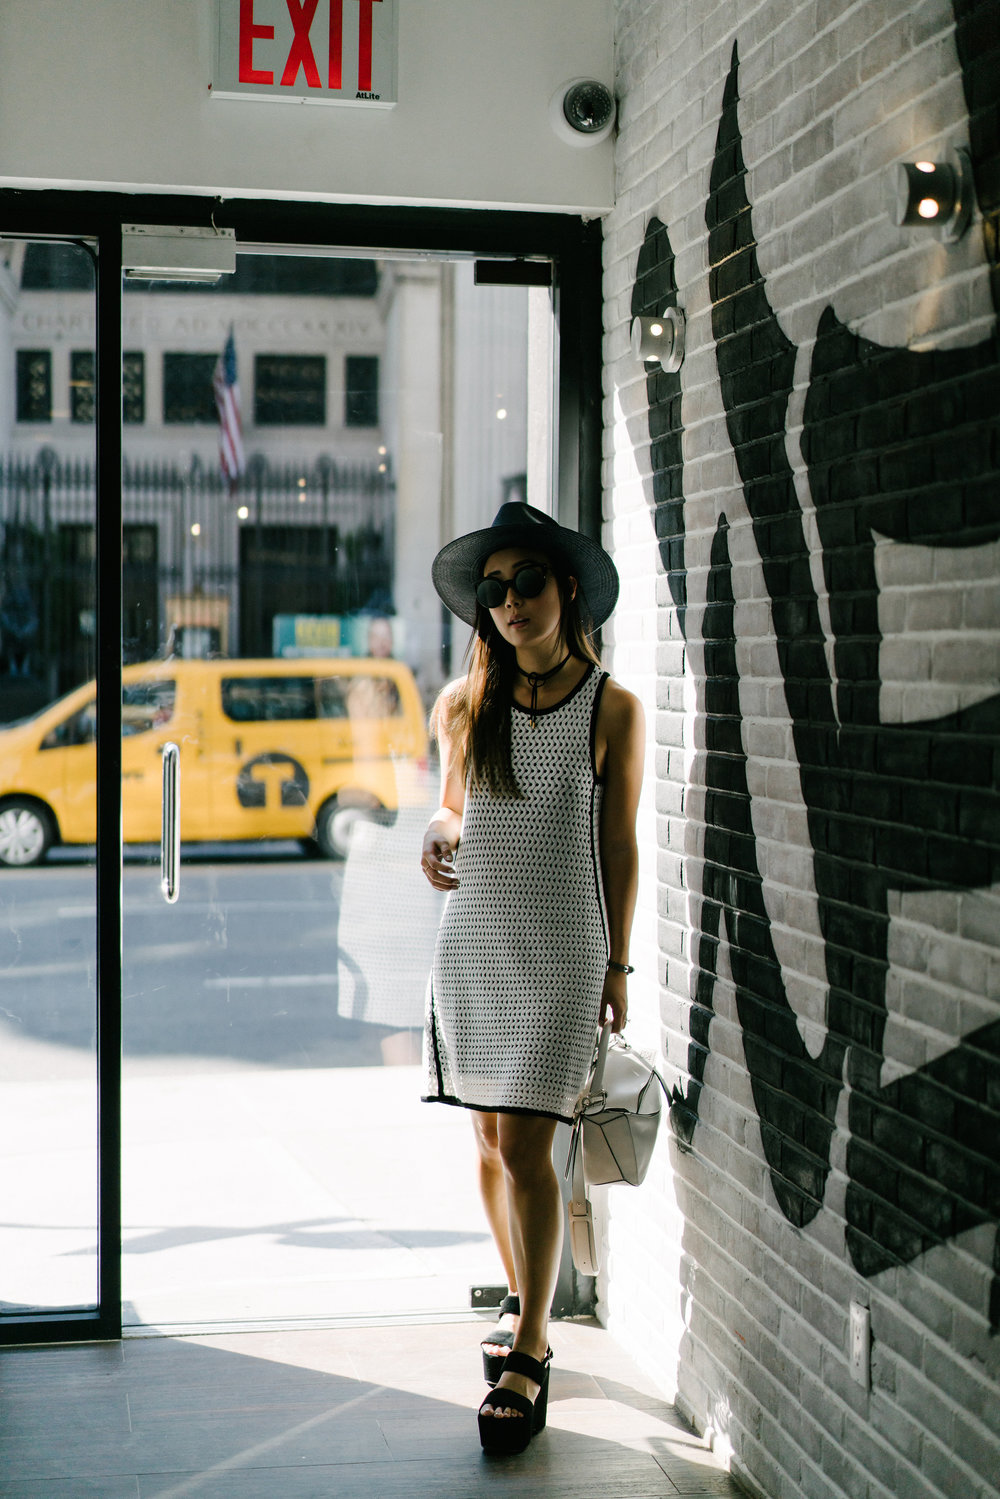 Ph5 Dress, Loewe Bag, Saint Laurent Shoes, Fendi Sunglasses, Janessa Leone Hat